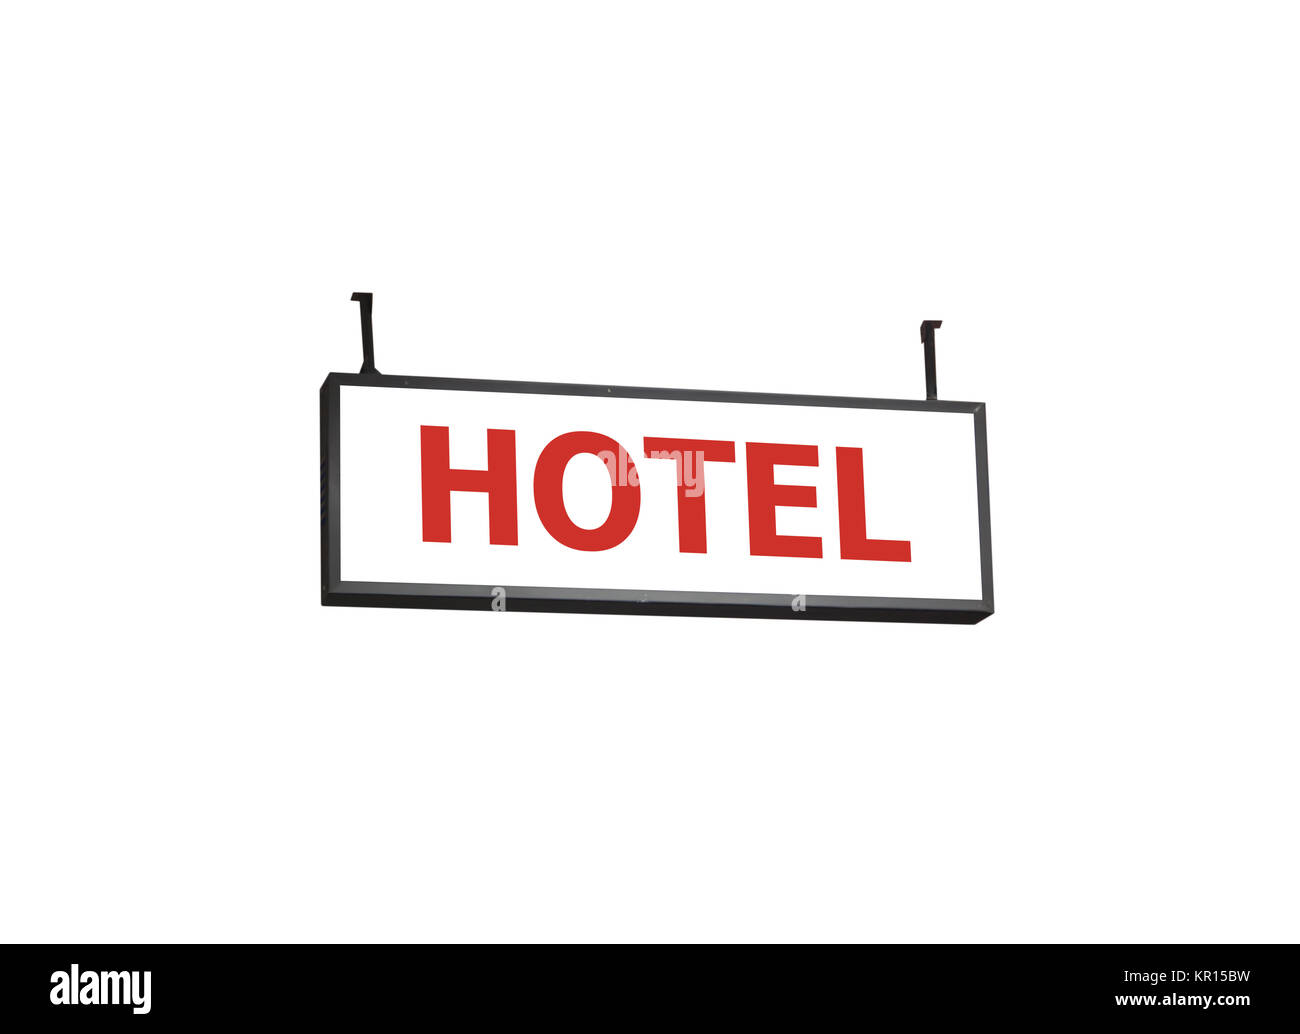 Hotel signboard on white background - Stock Image